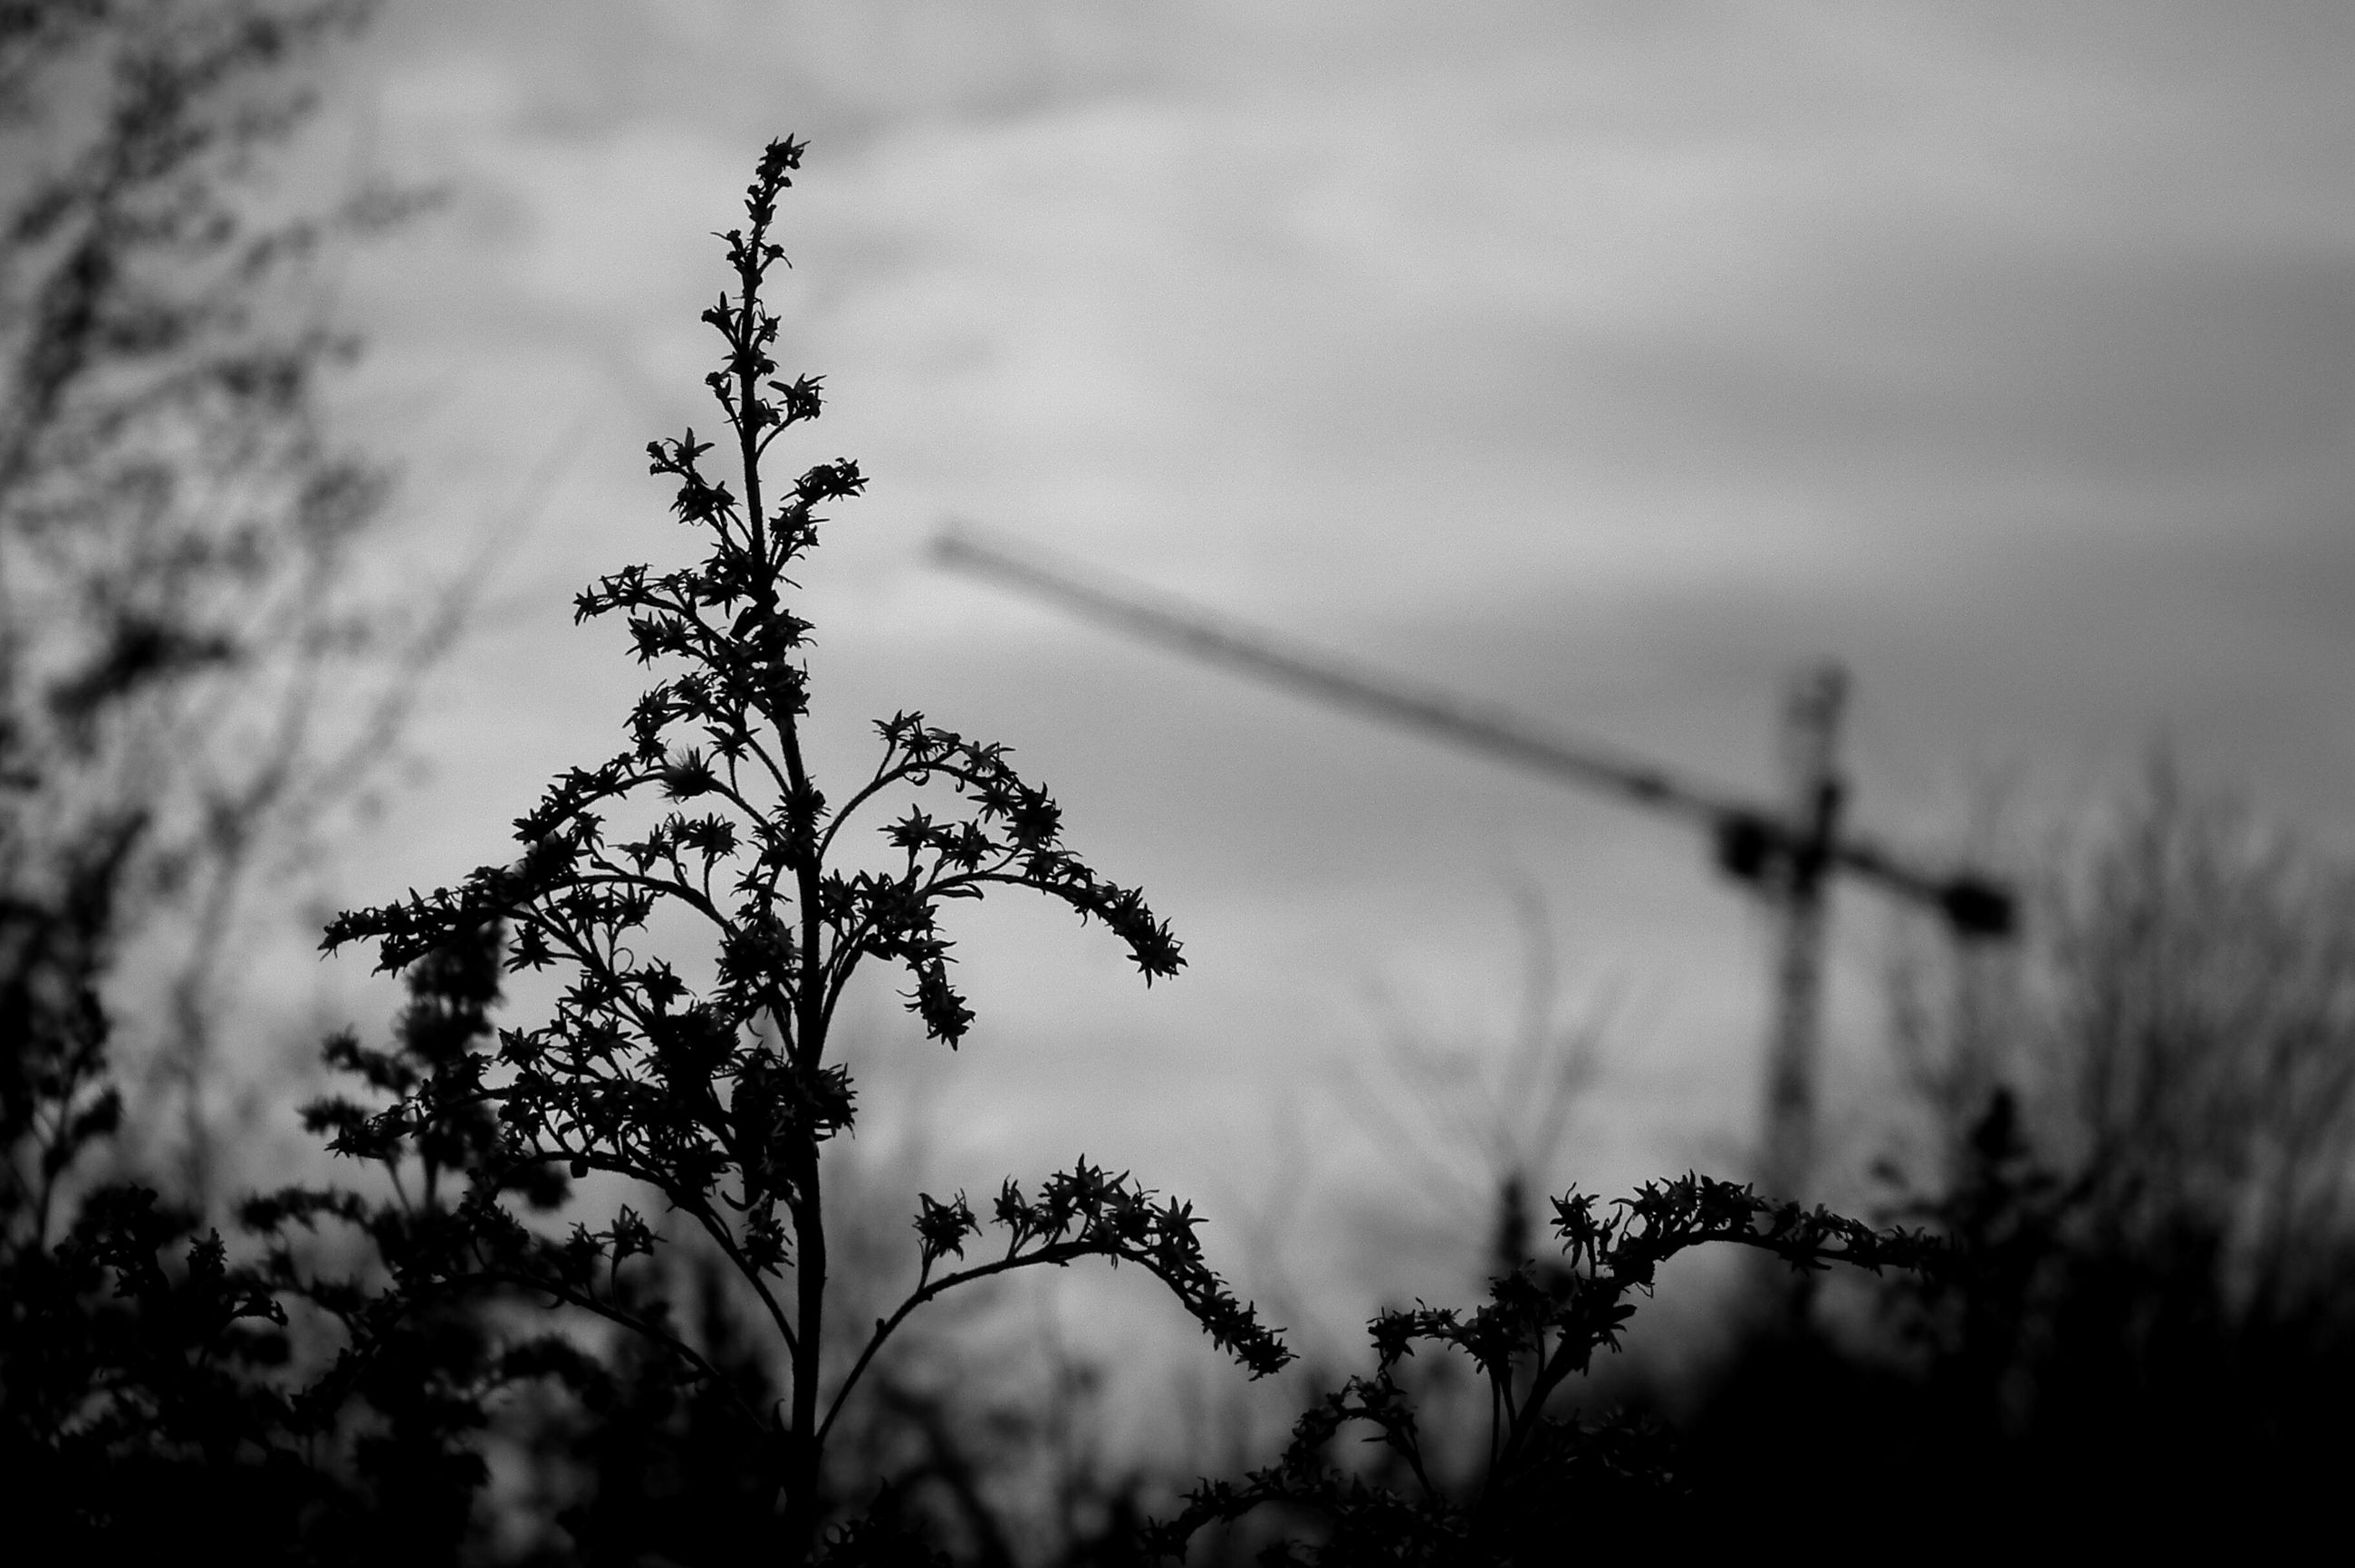 growth, plant, focus on foreground, close-up, nature, dusk, beauty in nature, flower, selective focus, sky, field, scenics, fragility, tranquility, day, outdoors, tranquil scene, no people, growing, high section, non-urban scene, freshness, cloud - sky